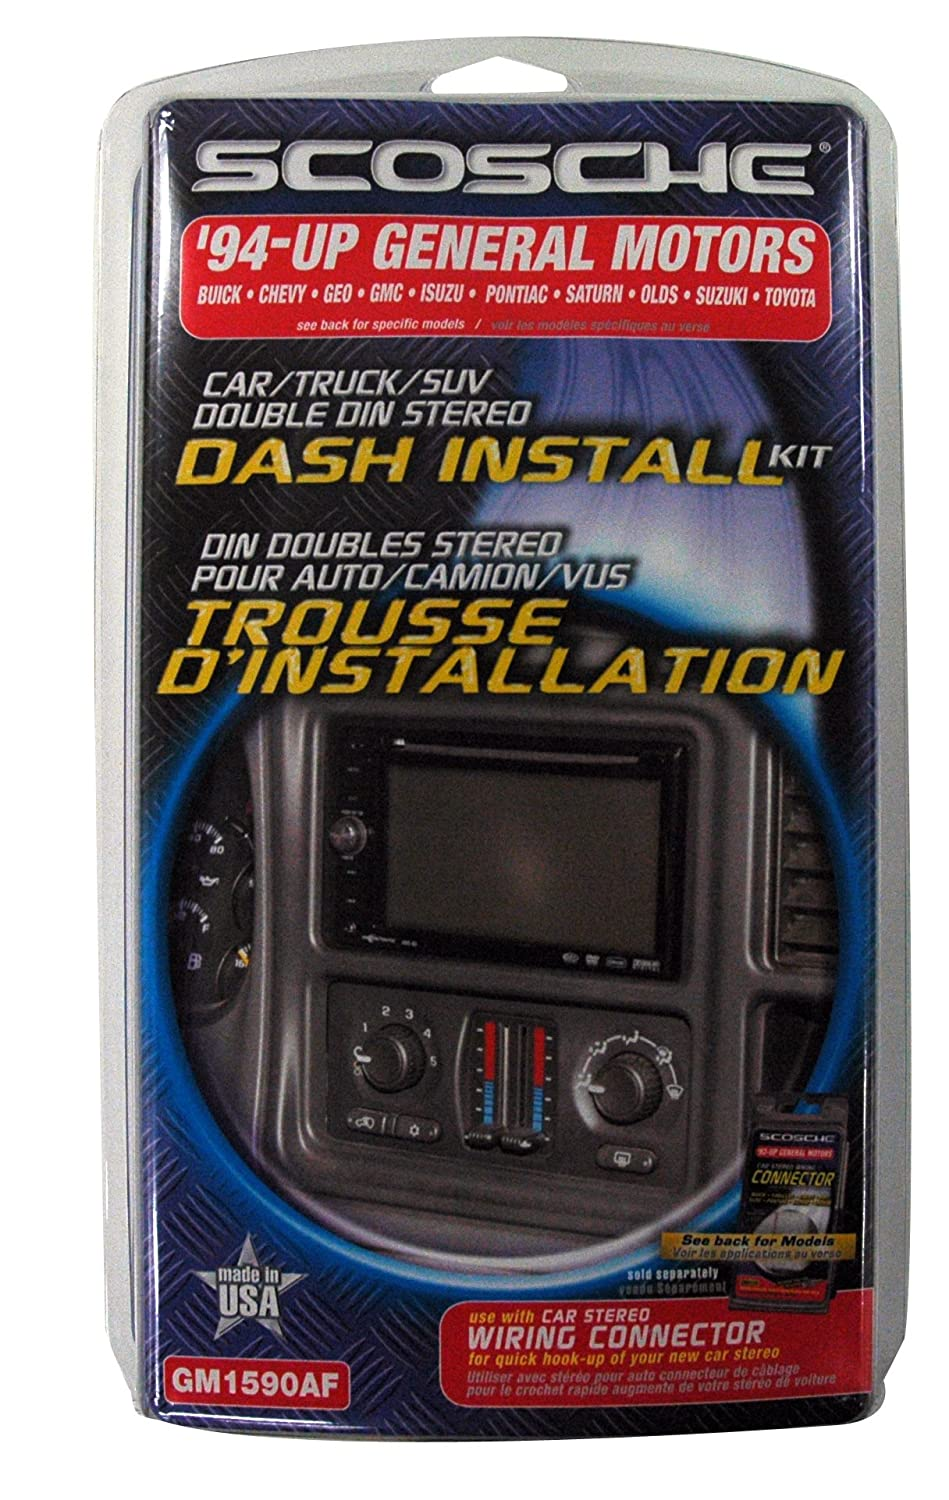 Scosche Dash Kit For 1992 Up General Motors Double Din Wiring Harness With Trim Ring Iso Car Electronics